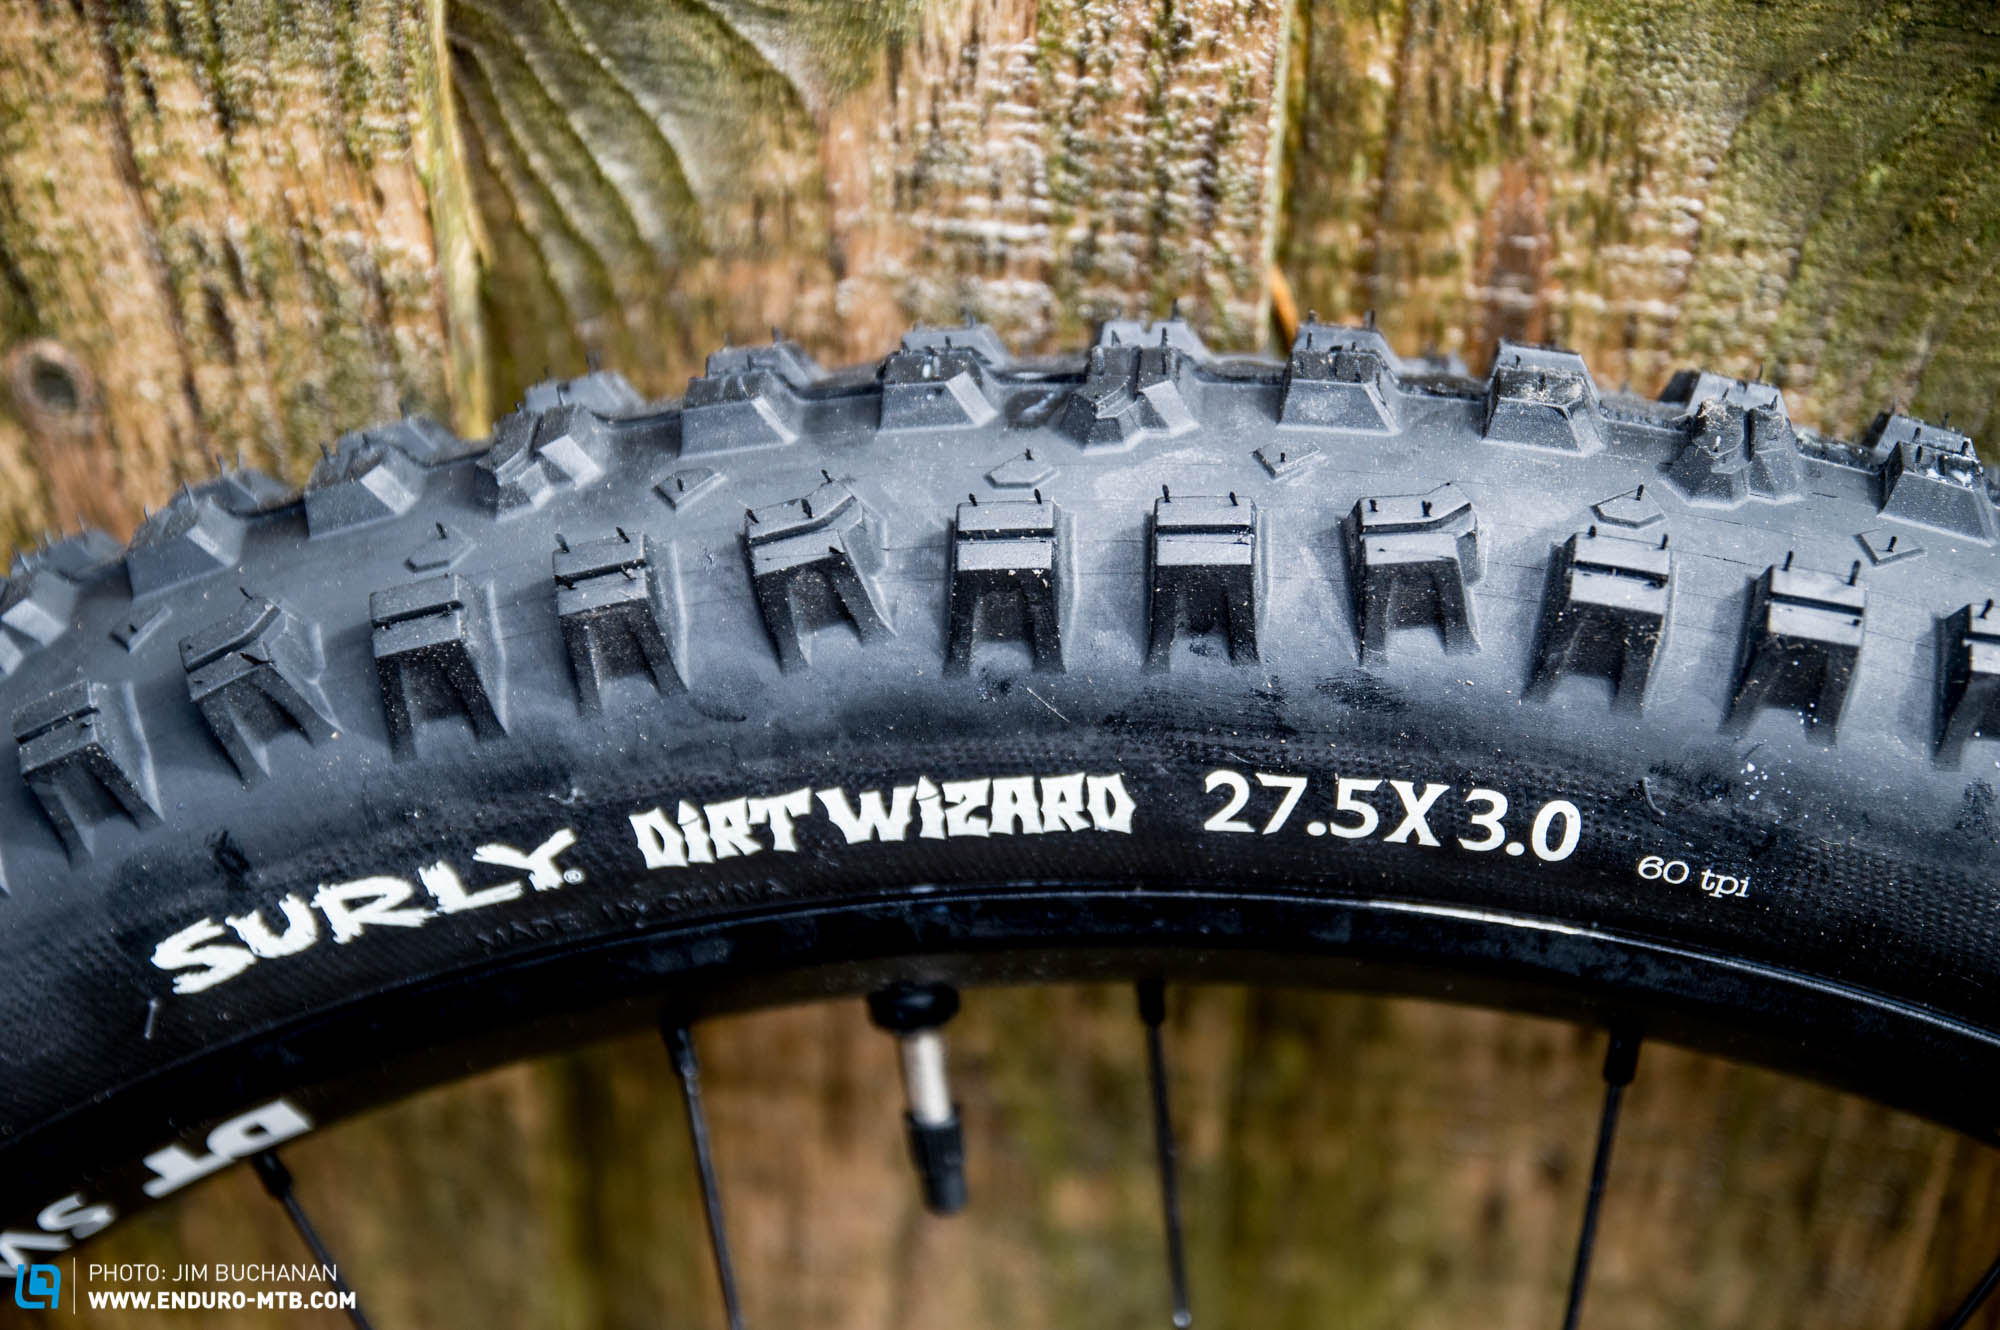 Surly Dirt Wizard 27 5 X 3 Review The Most Aggressive Plus Tire